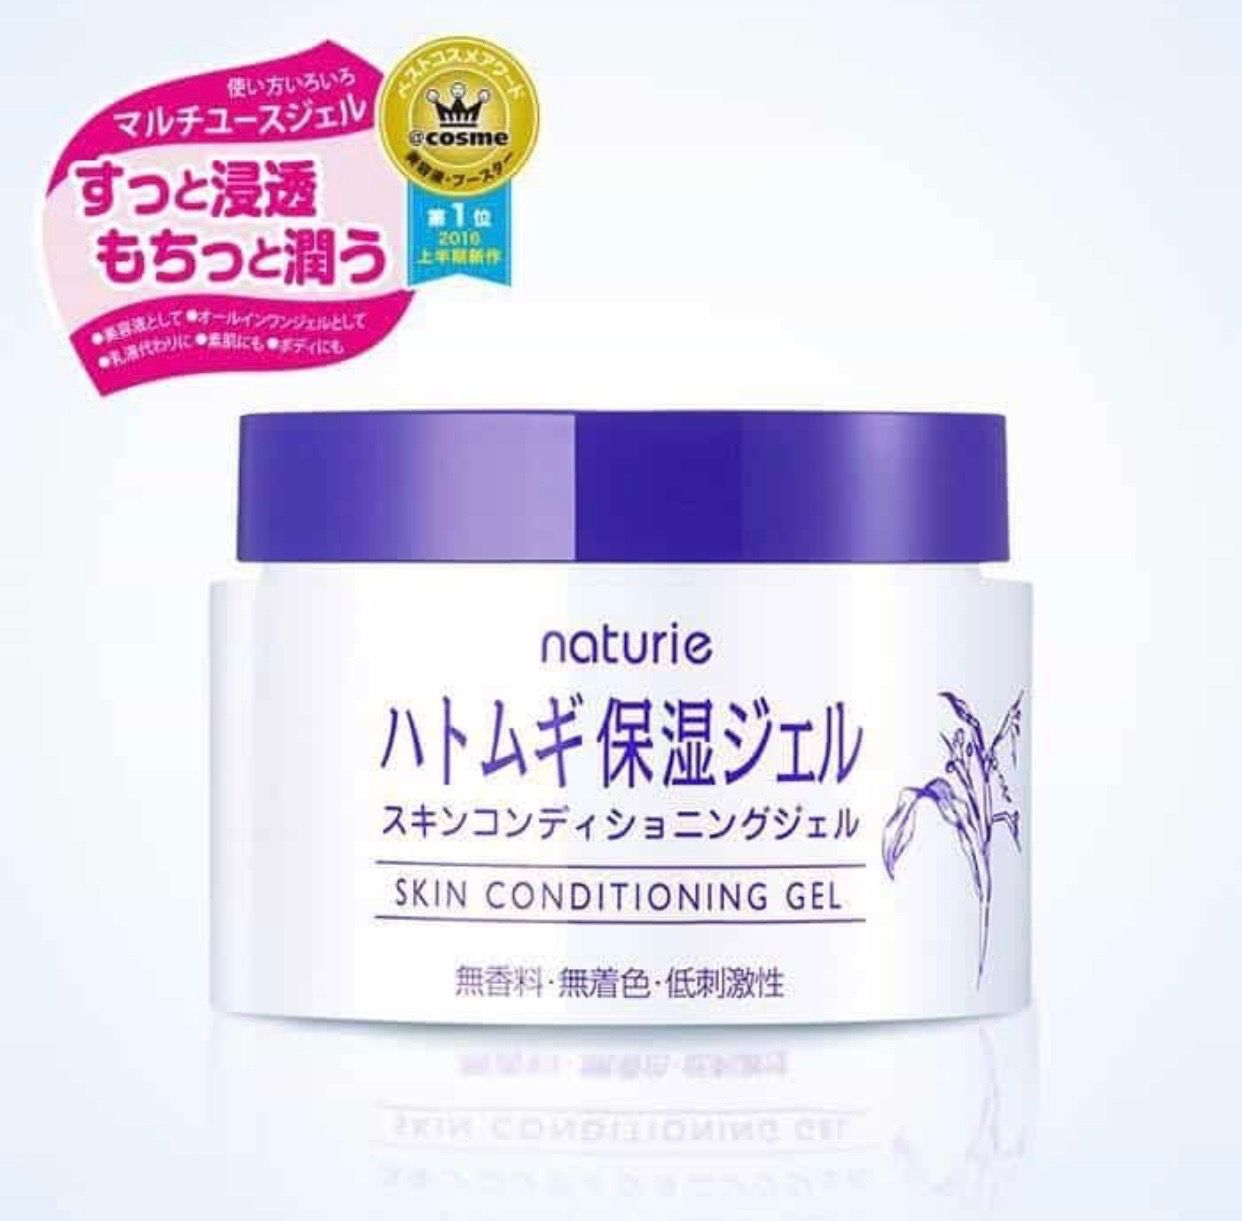 Naturie Skin Conditioning Pearl Barley Gel 180g